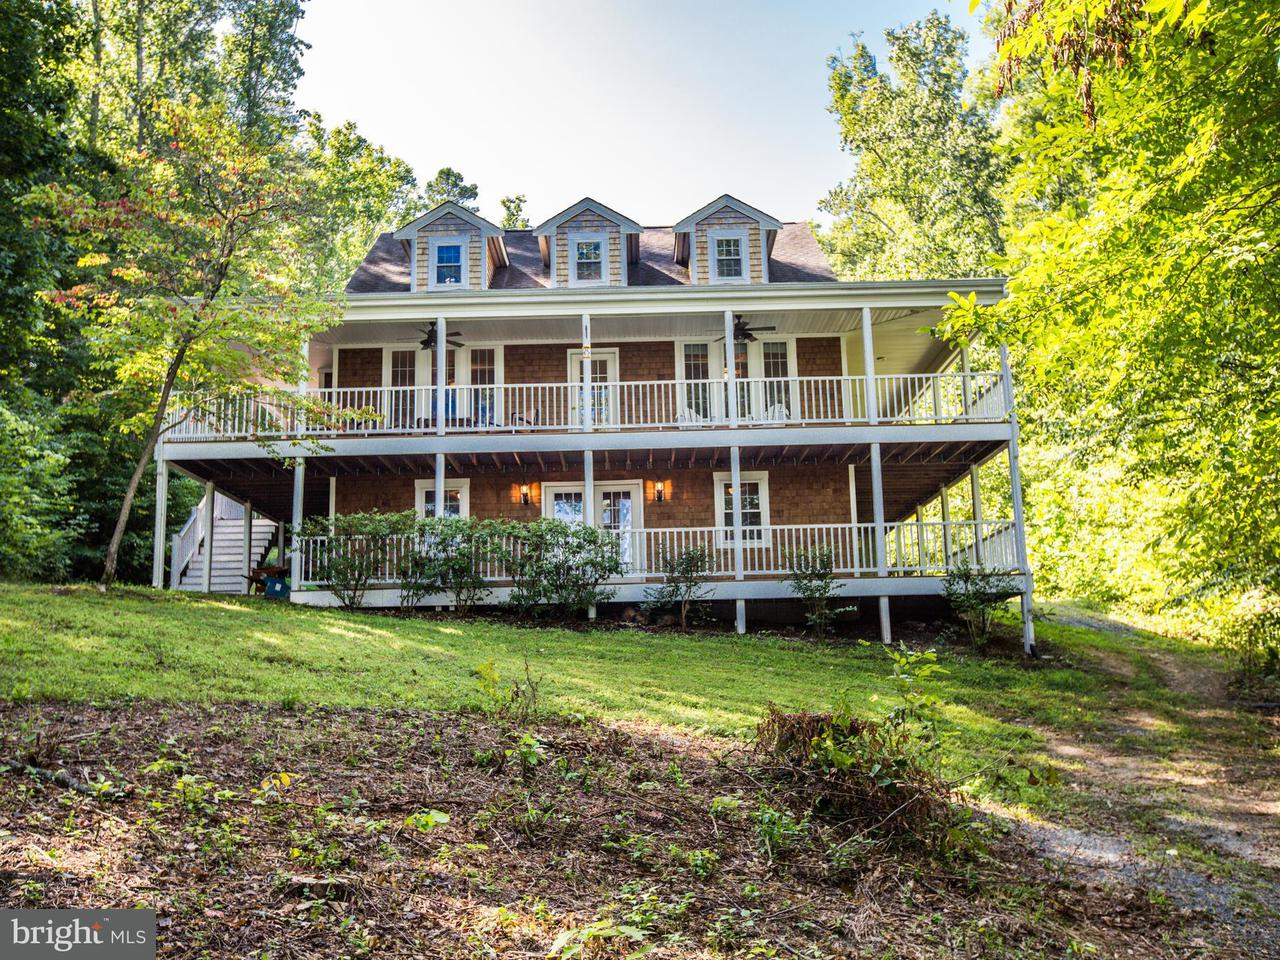 Single Family Home for Sale at 7320 Old Dickersons Road 7320 Old Dickersons Road Orange, Virginia 22960 United States